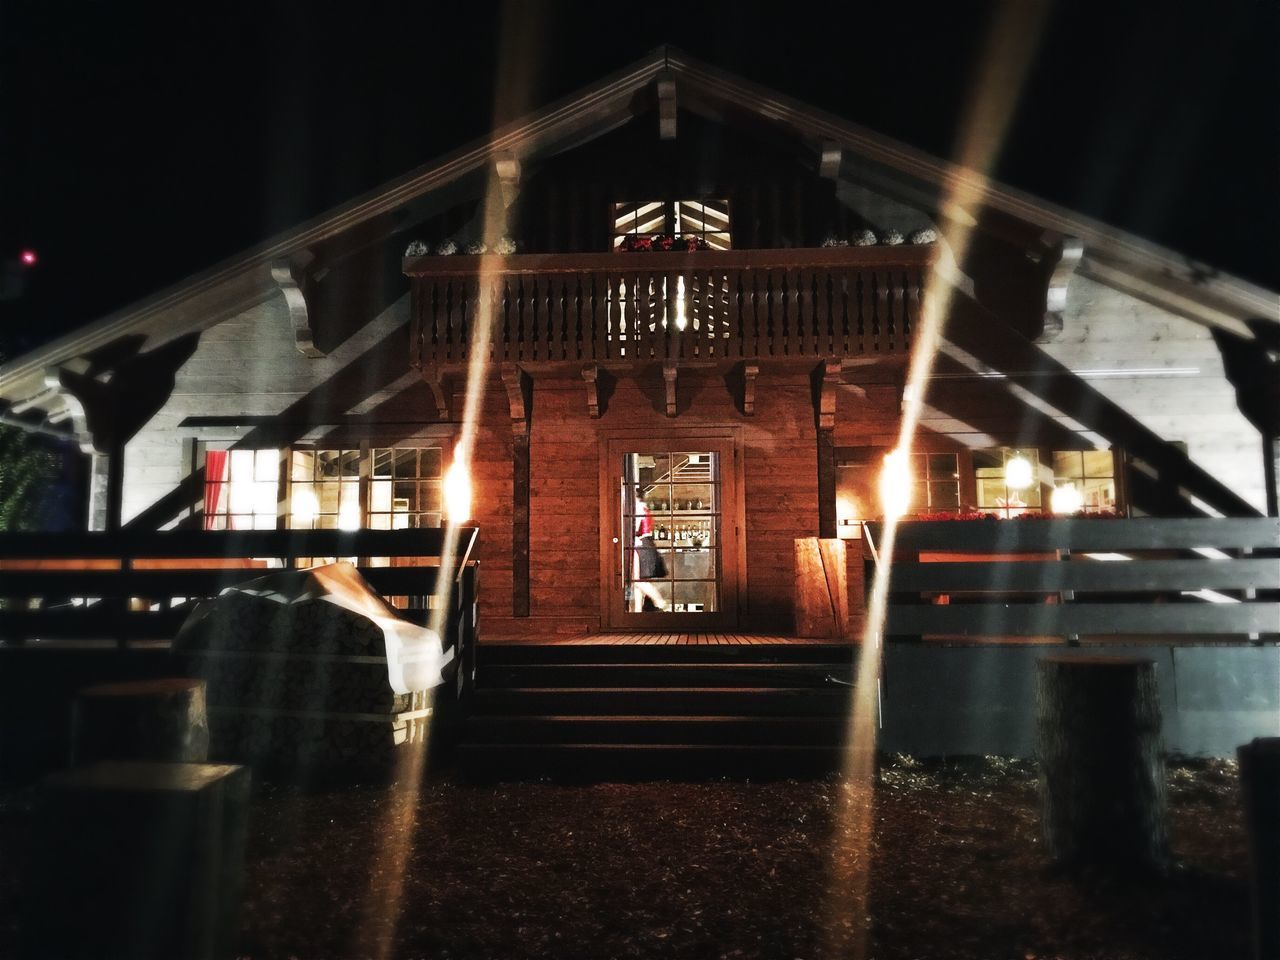 Illuminated Text Architecture Road Built Structure Building Exterior Night Steps Railroad Station Outdoors Entrance Sky Tourism Lens Flare Chalet